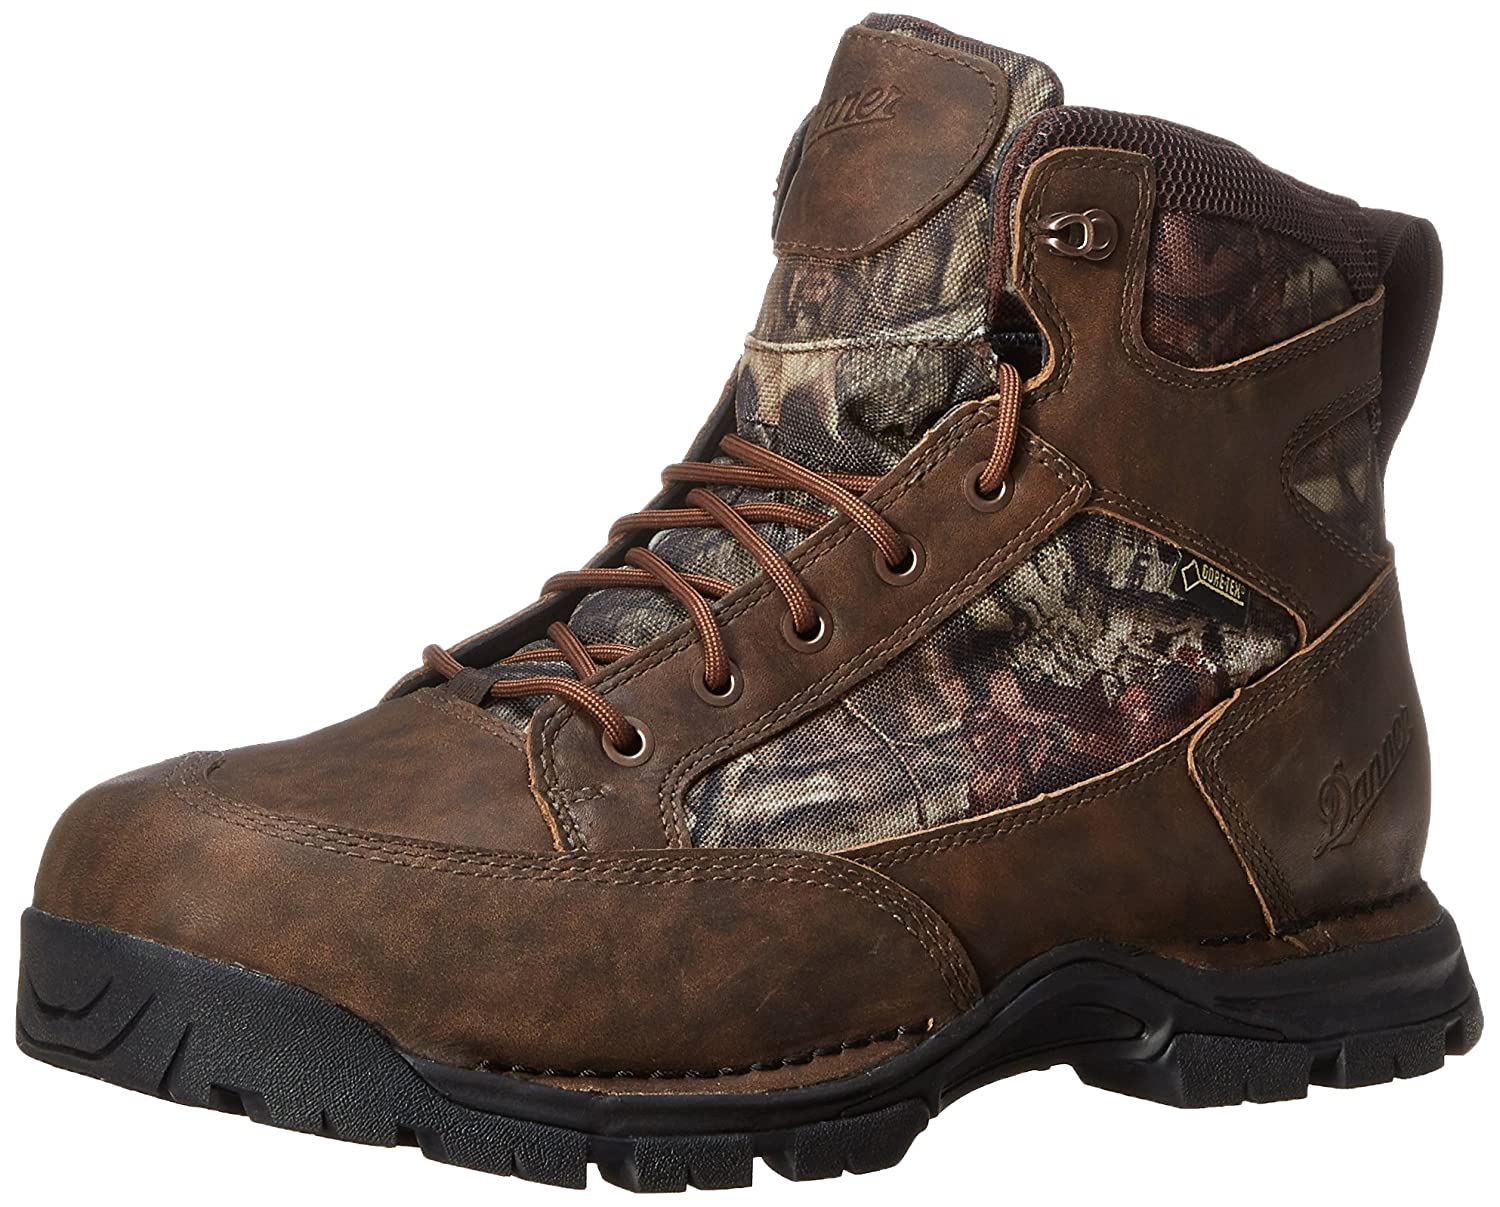 Danner Pronghorn Hunting Boot